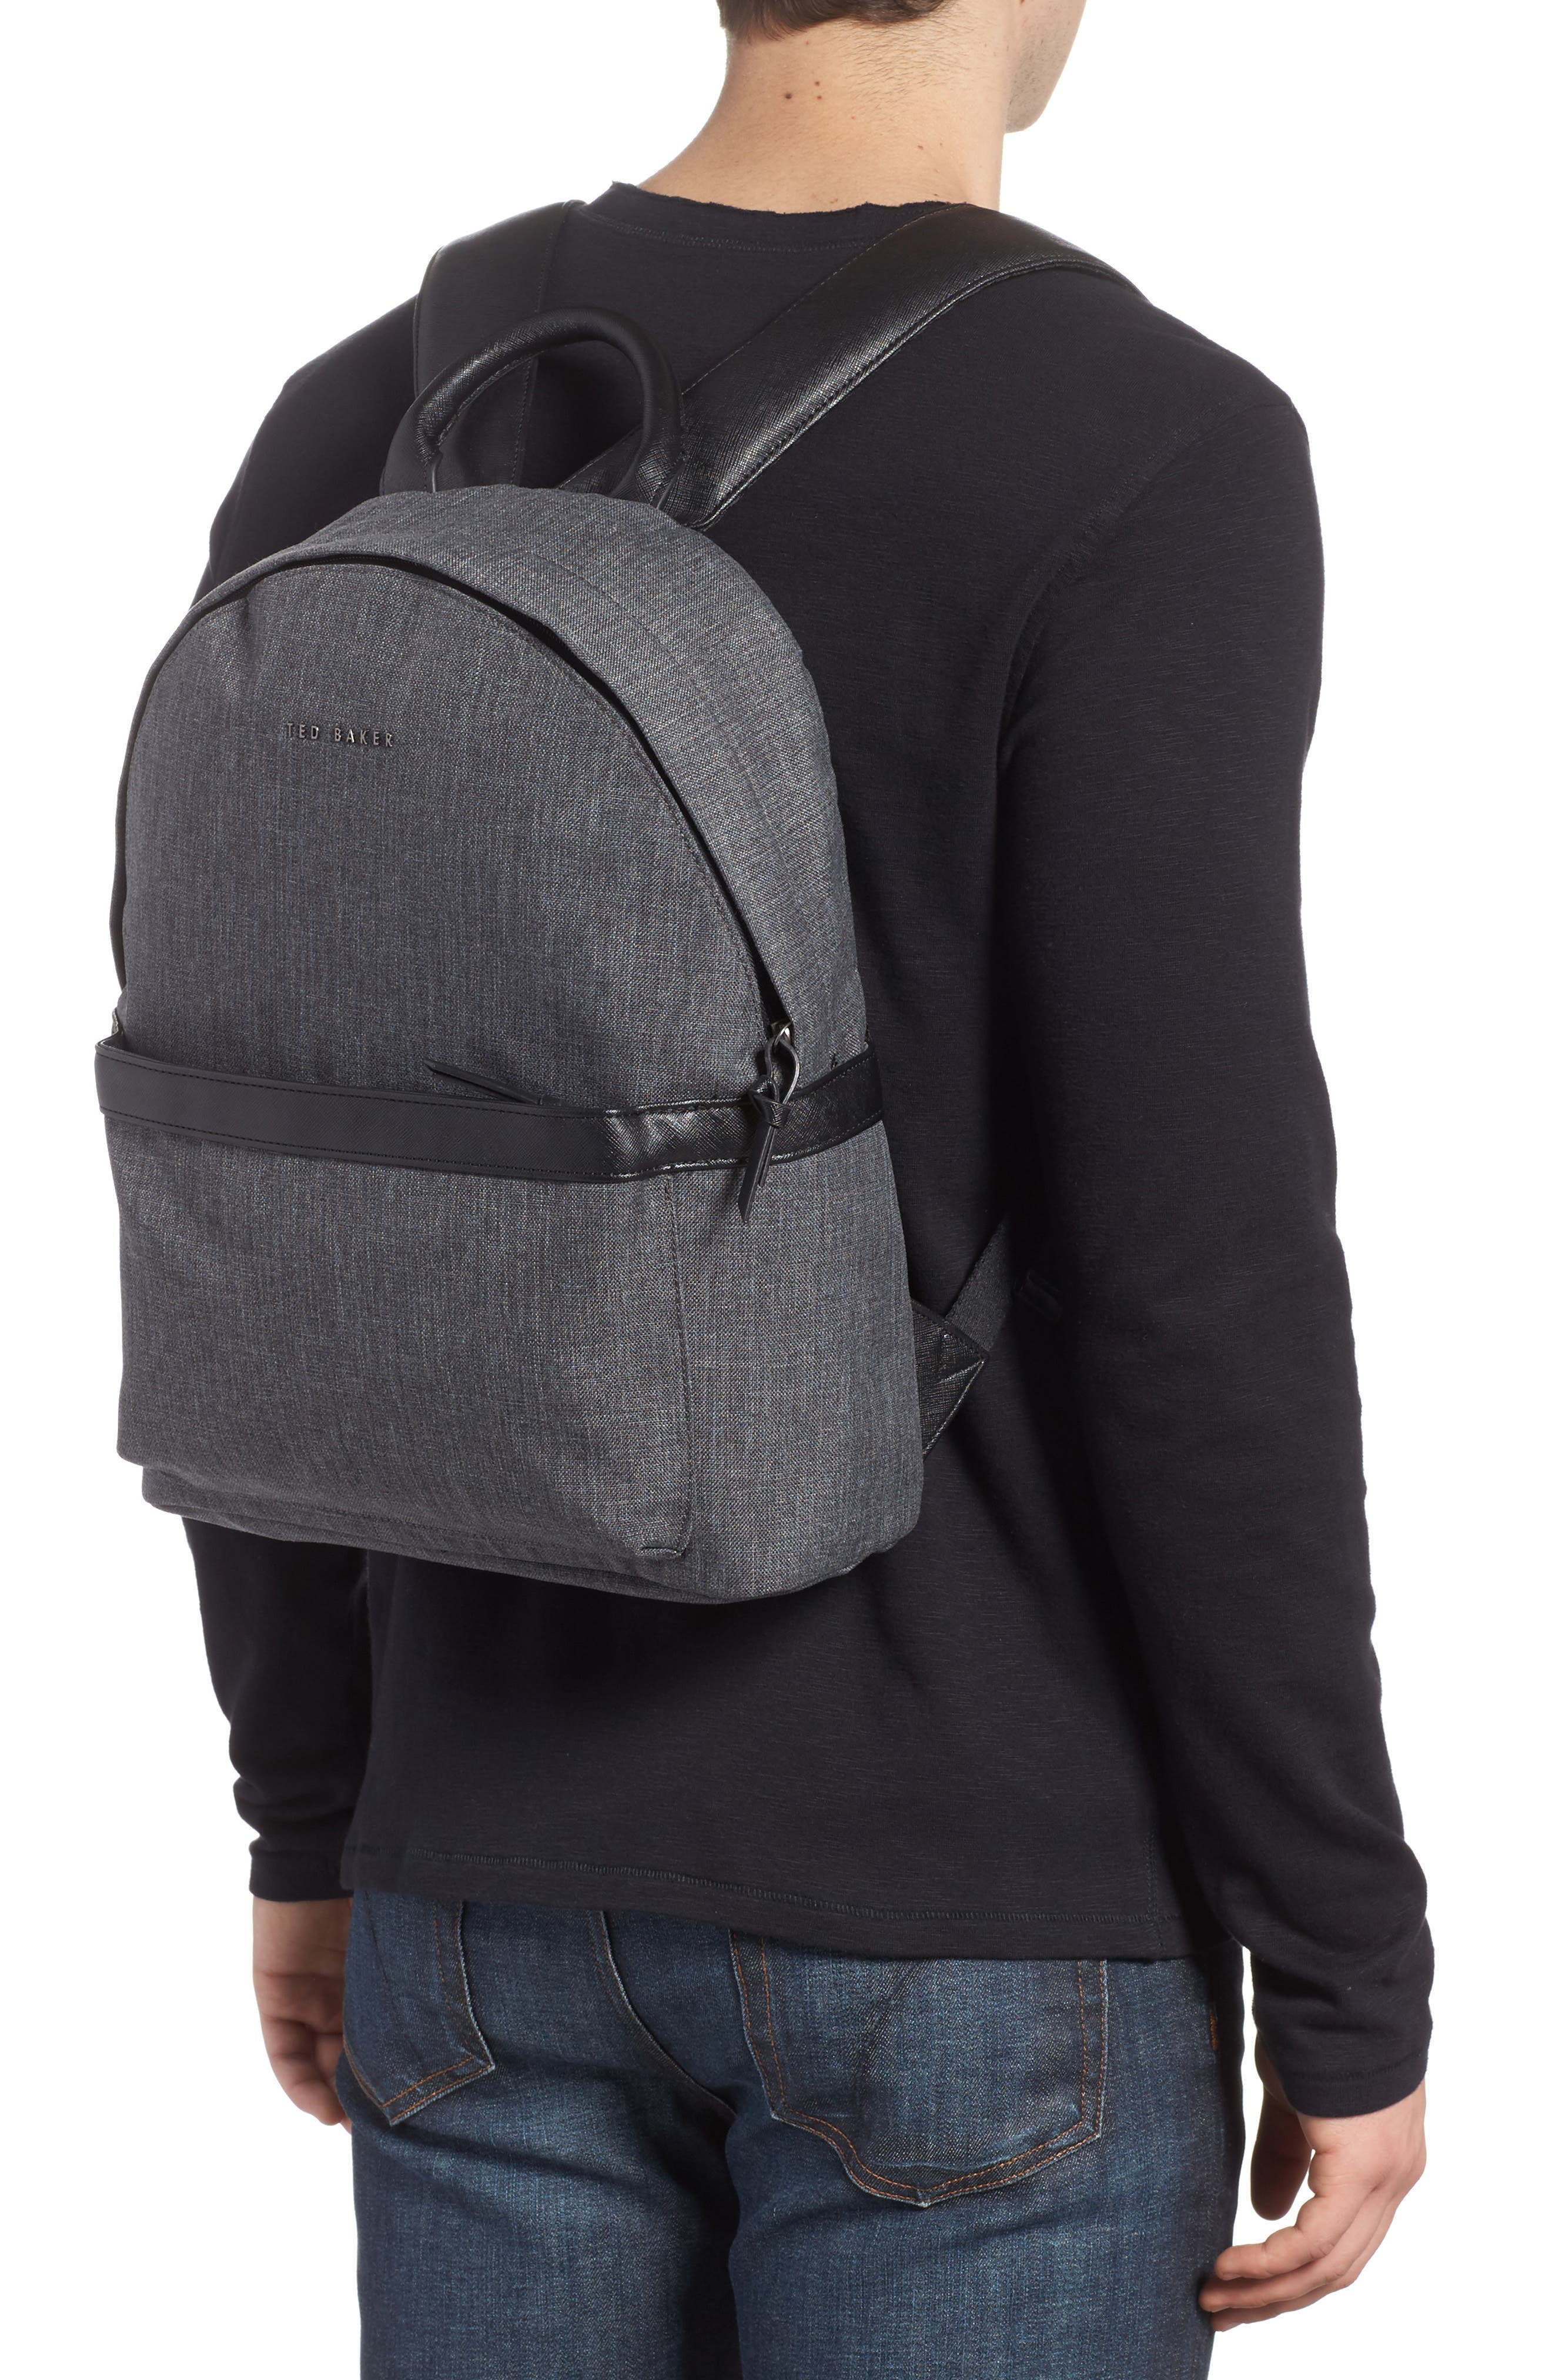 Lychee Backpack,                             Alternate thumbnail 2, color,                             010